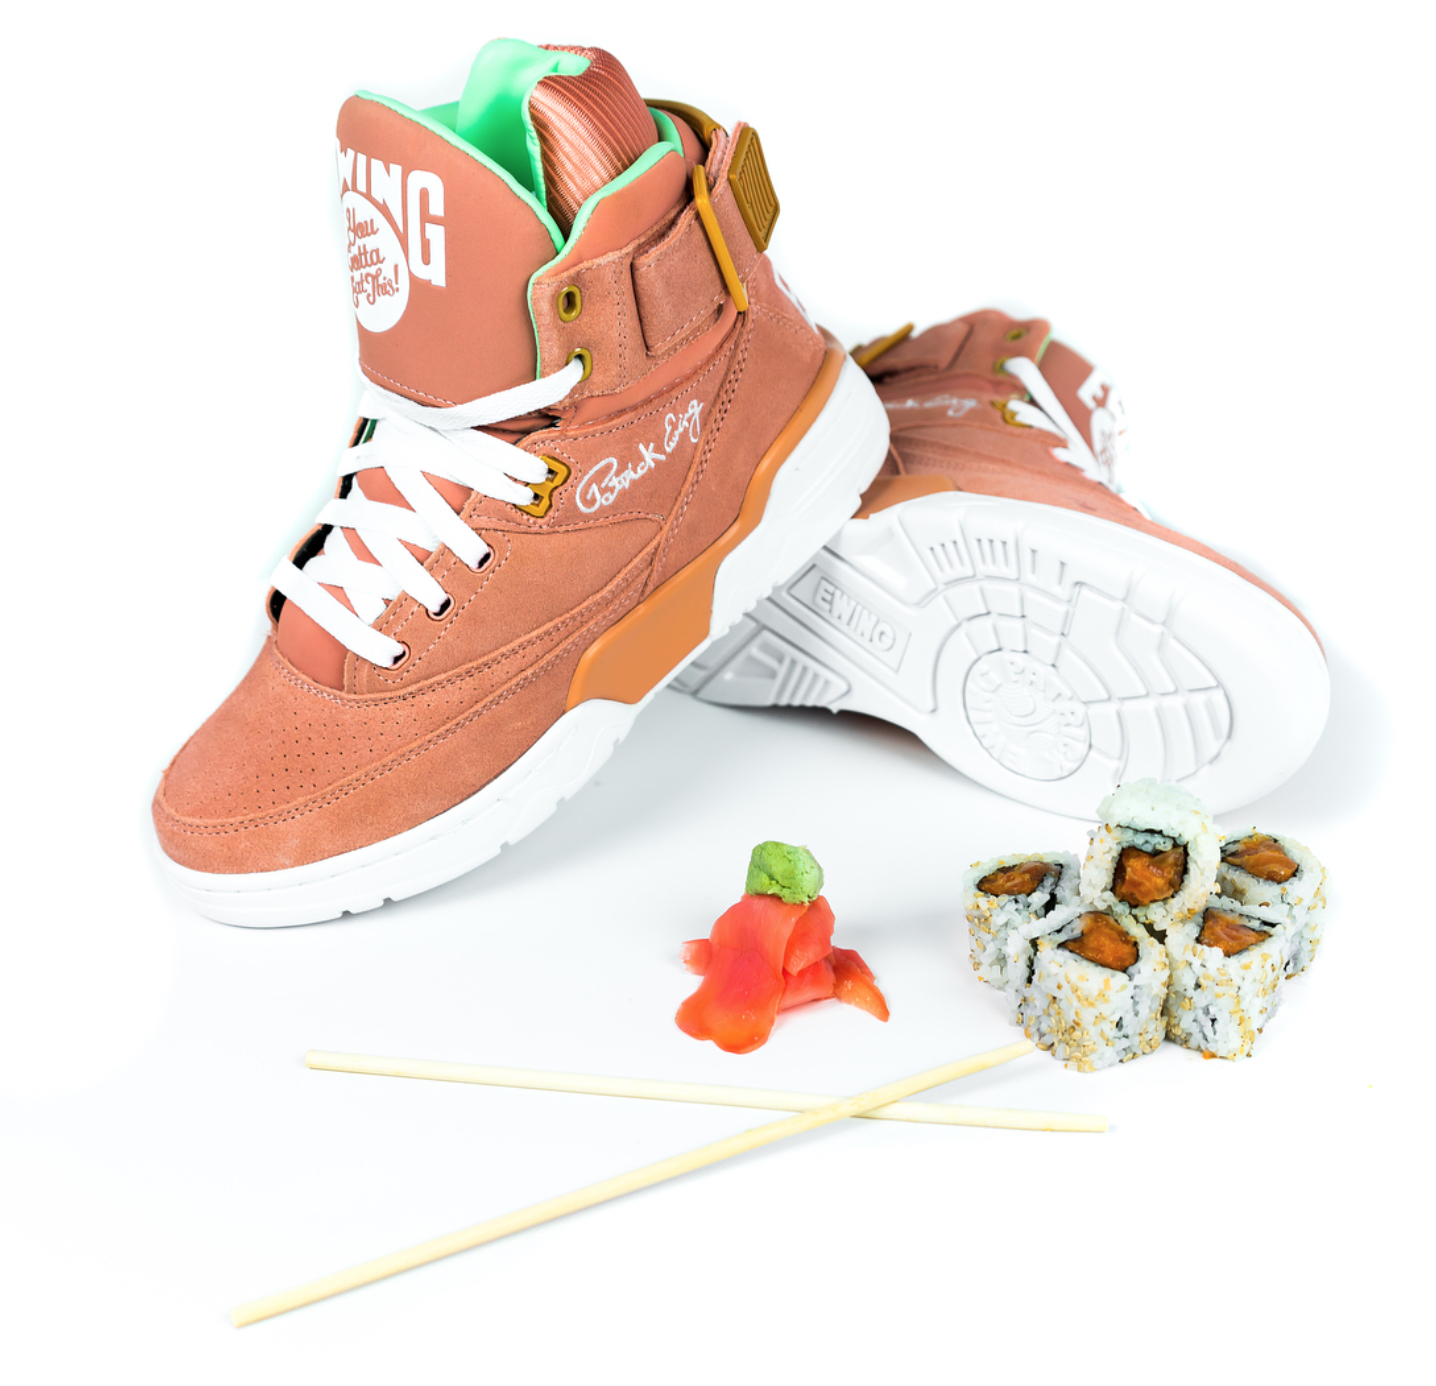 You Gotta Eat This x Ewing 33 Hi Sushi